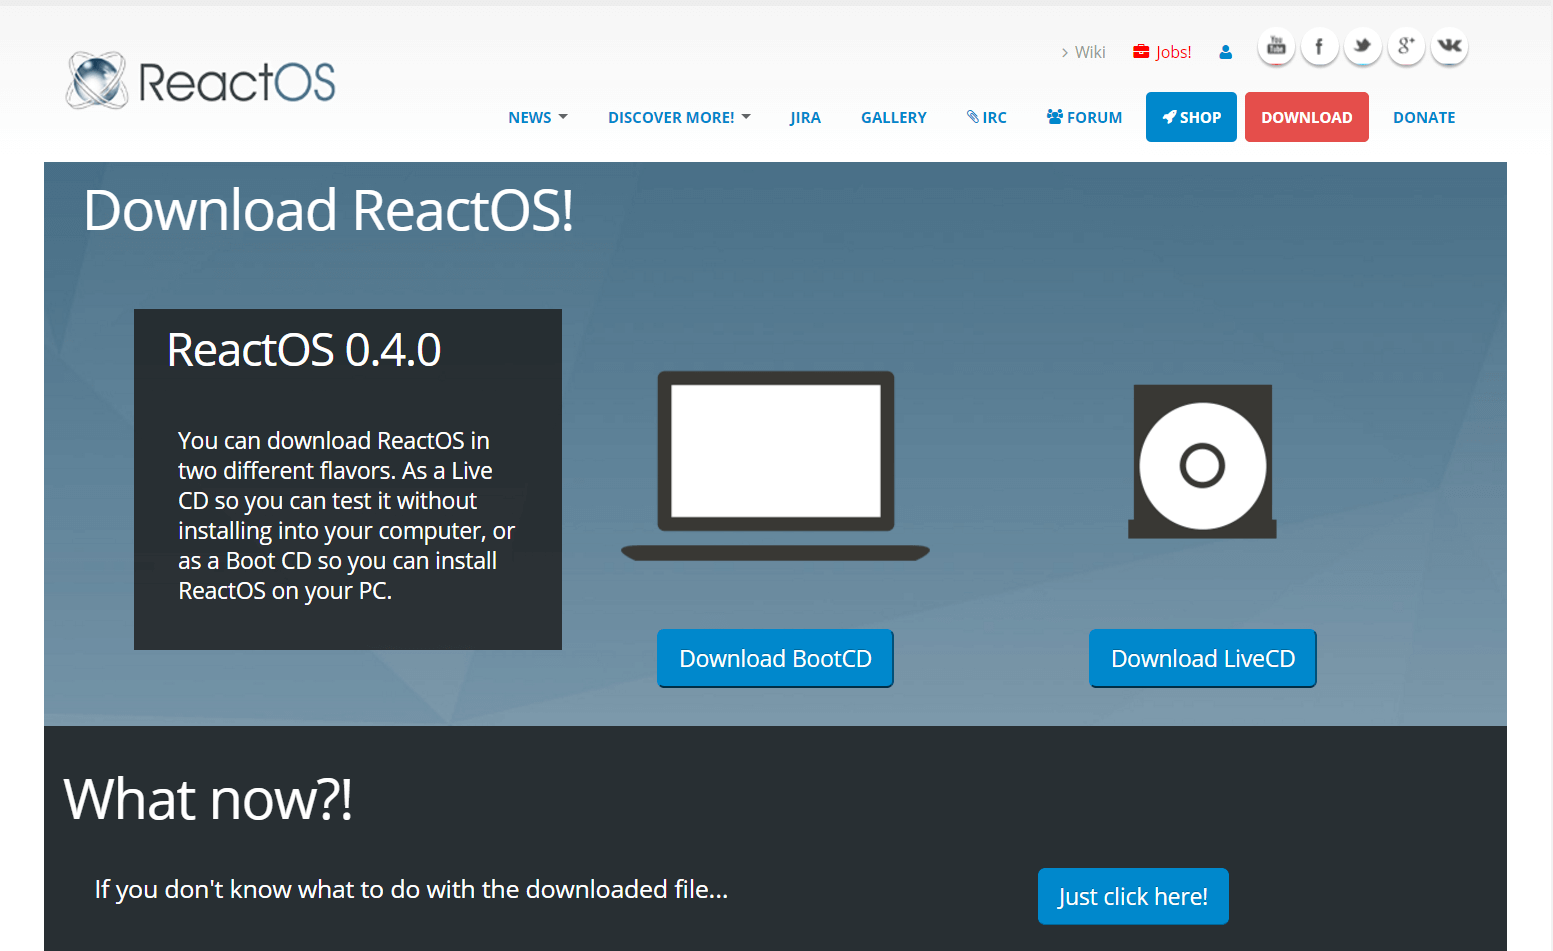 reactos_v0.4.0_download_page